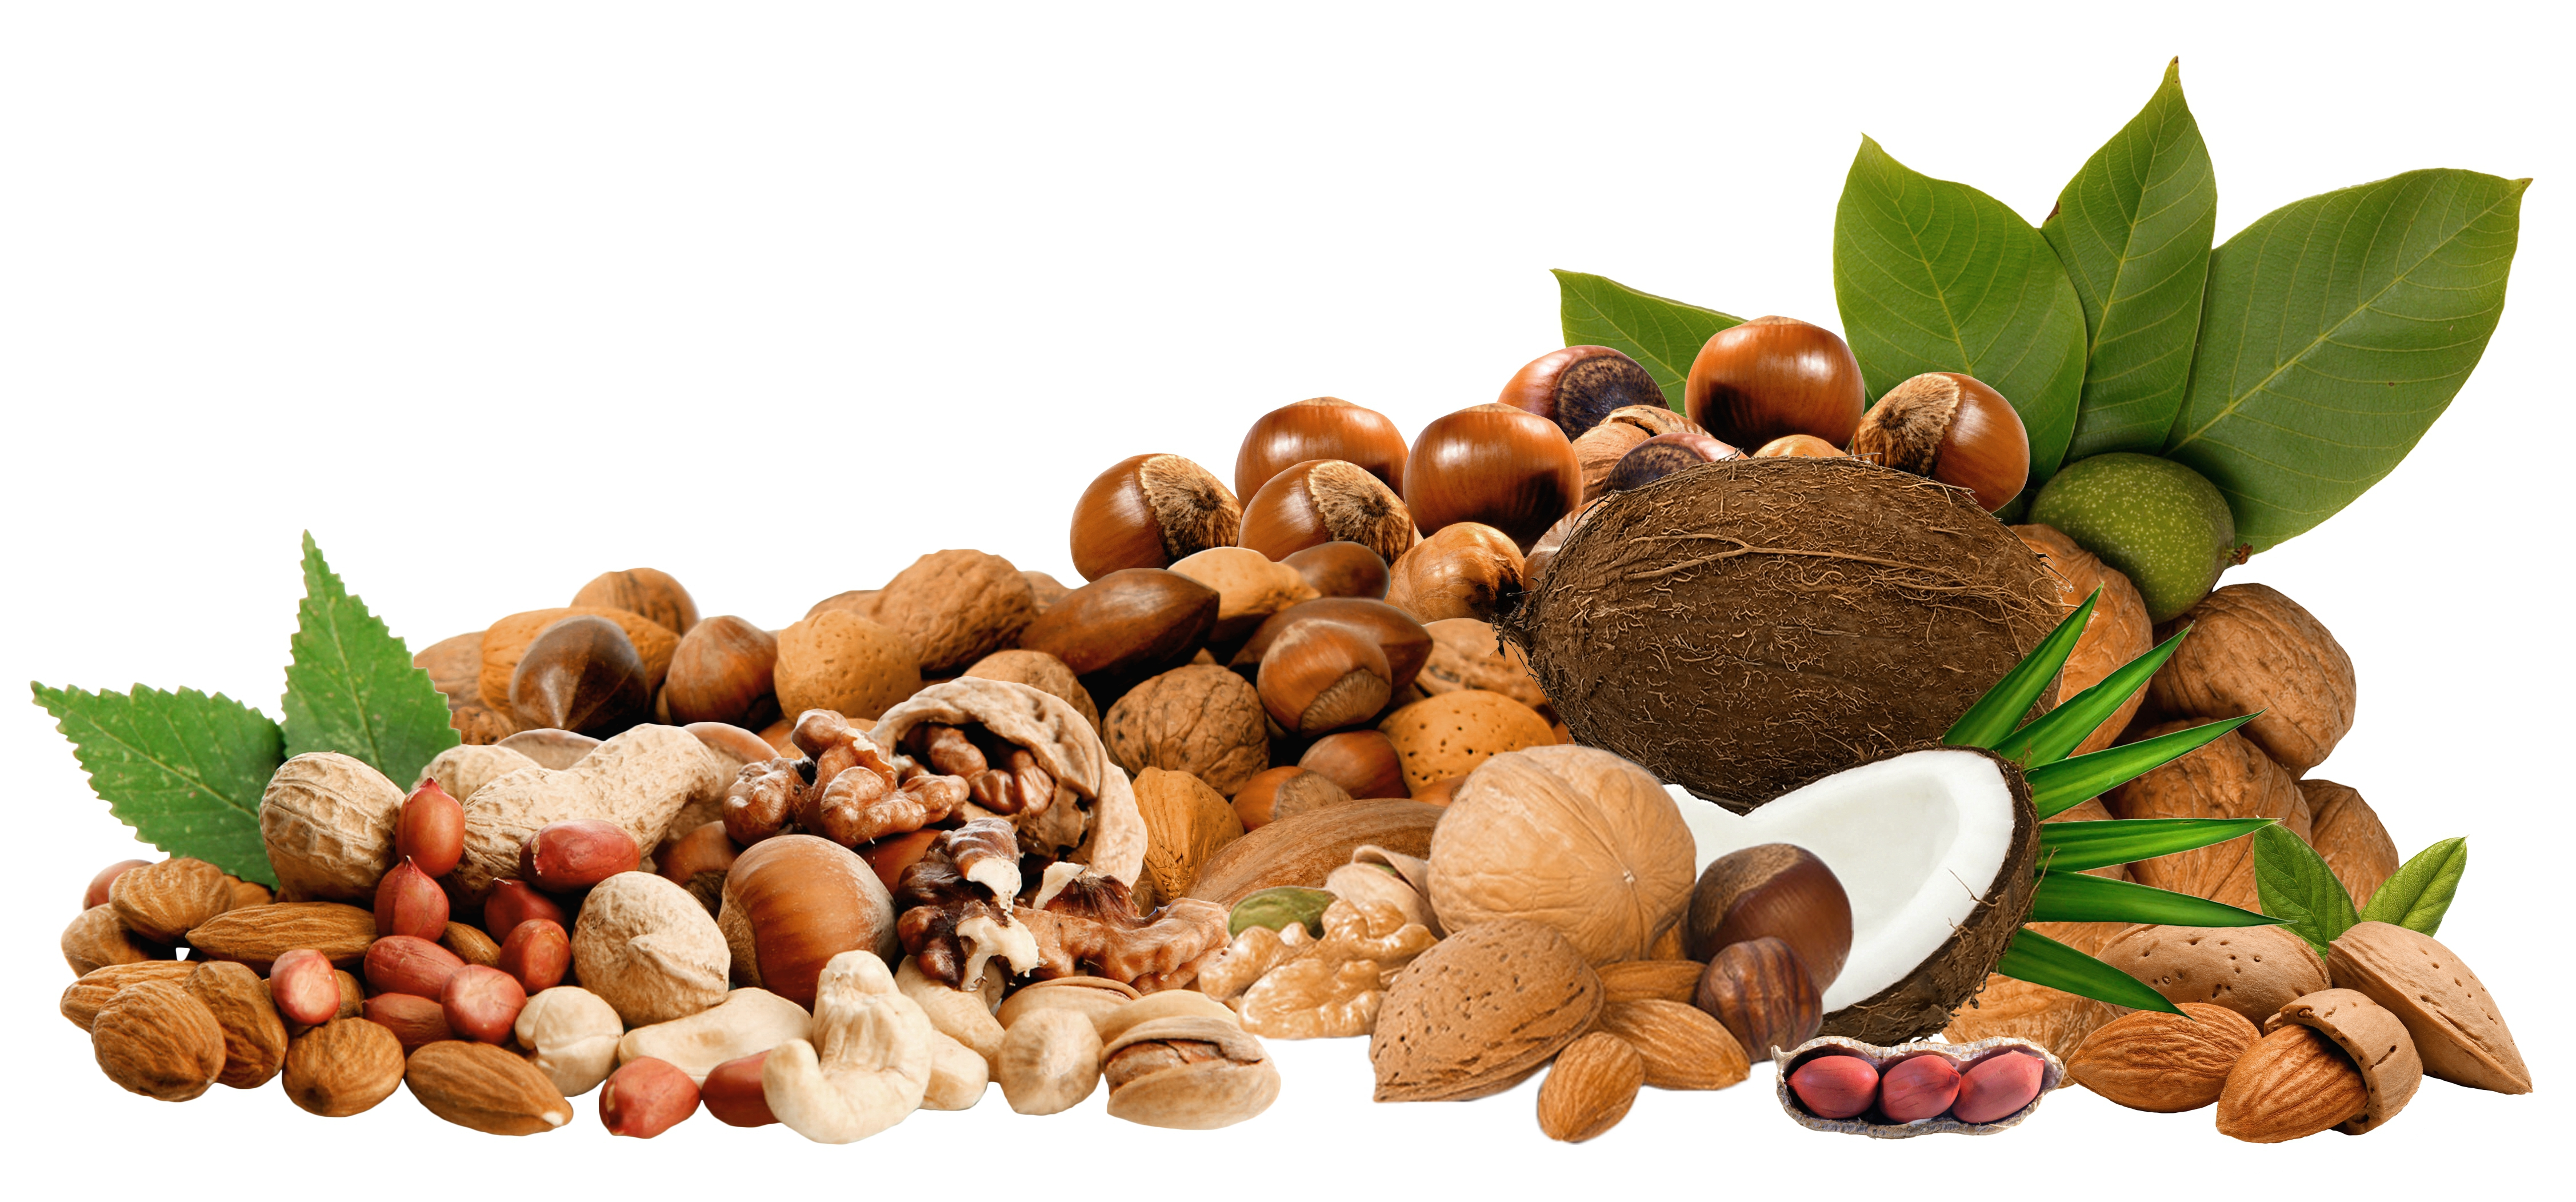 Dry Nuts Hd Free Image: Nuts Wallpapers Images Photos Pictures Backgrounds